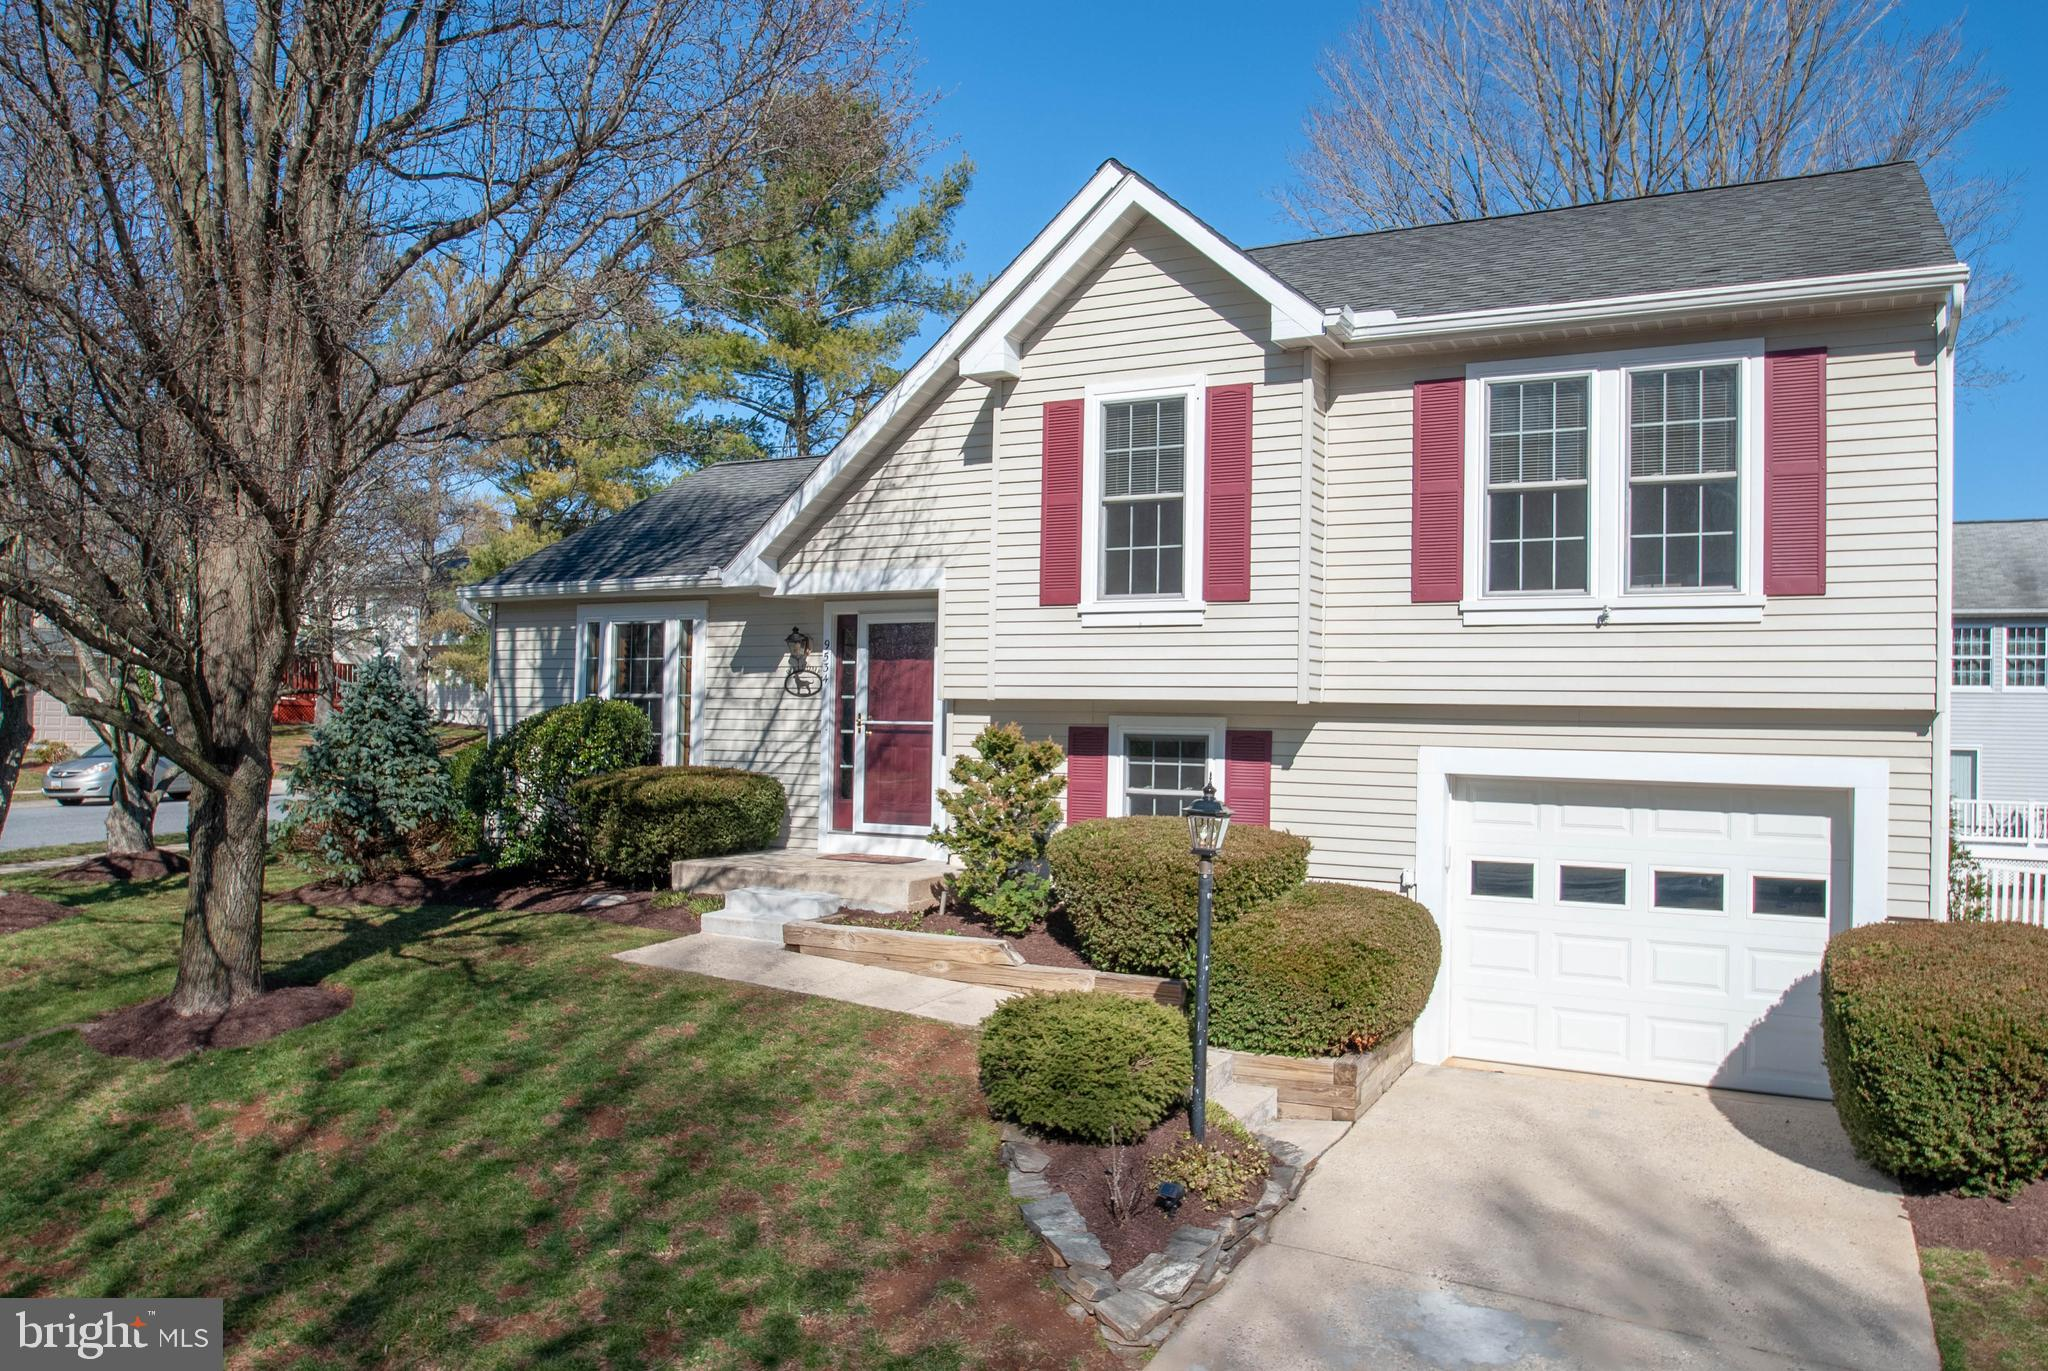 9534 RED APPLE LANE, COLUMBIA, MD 21046